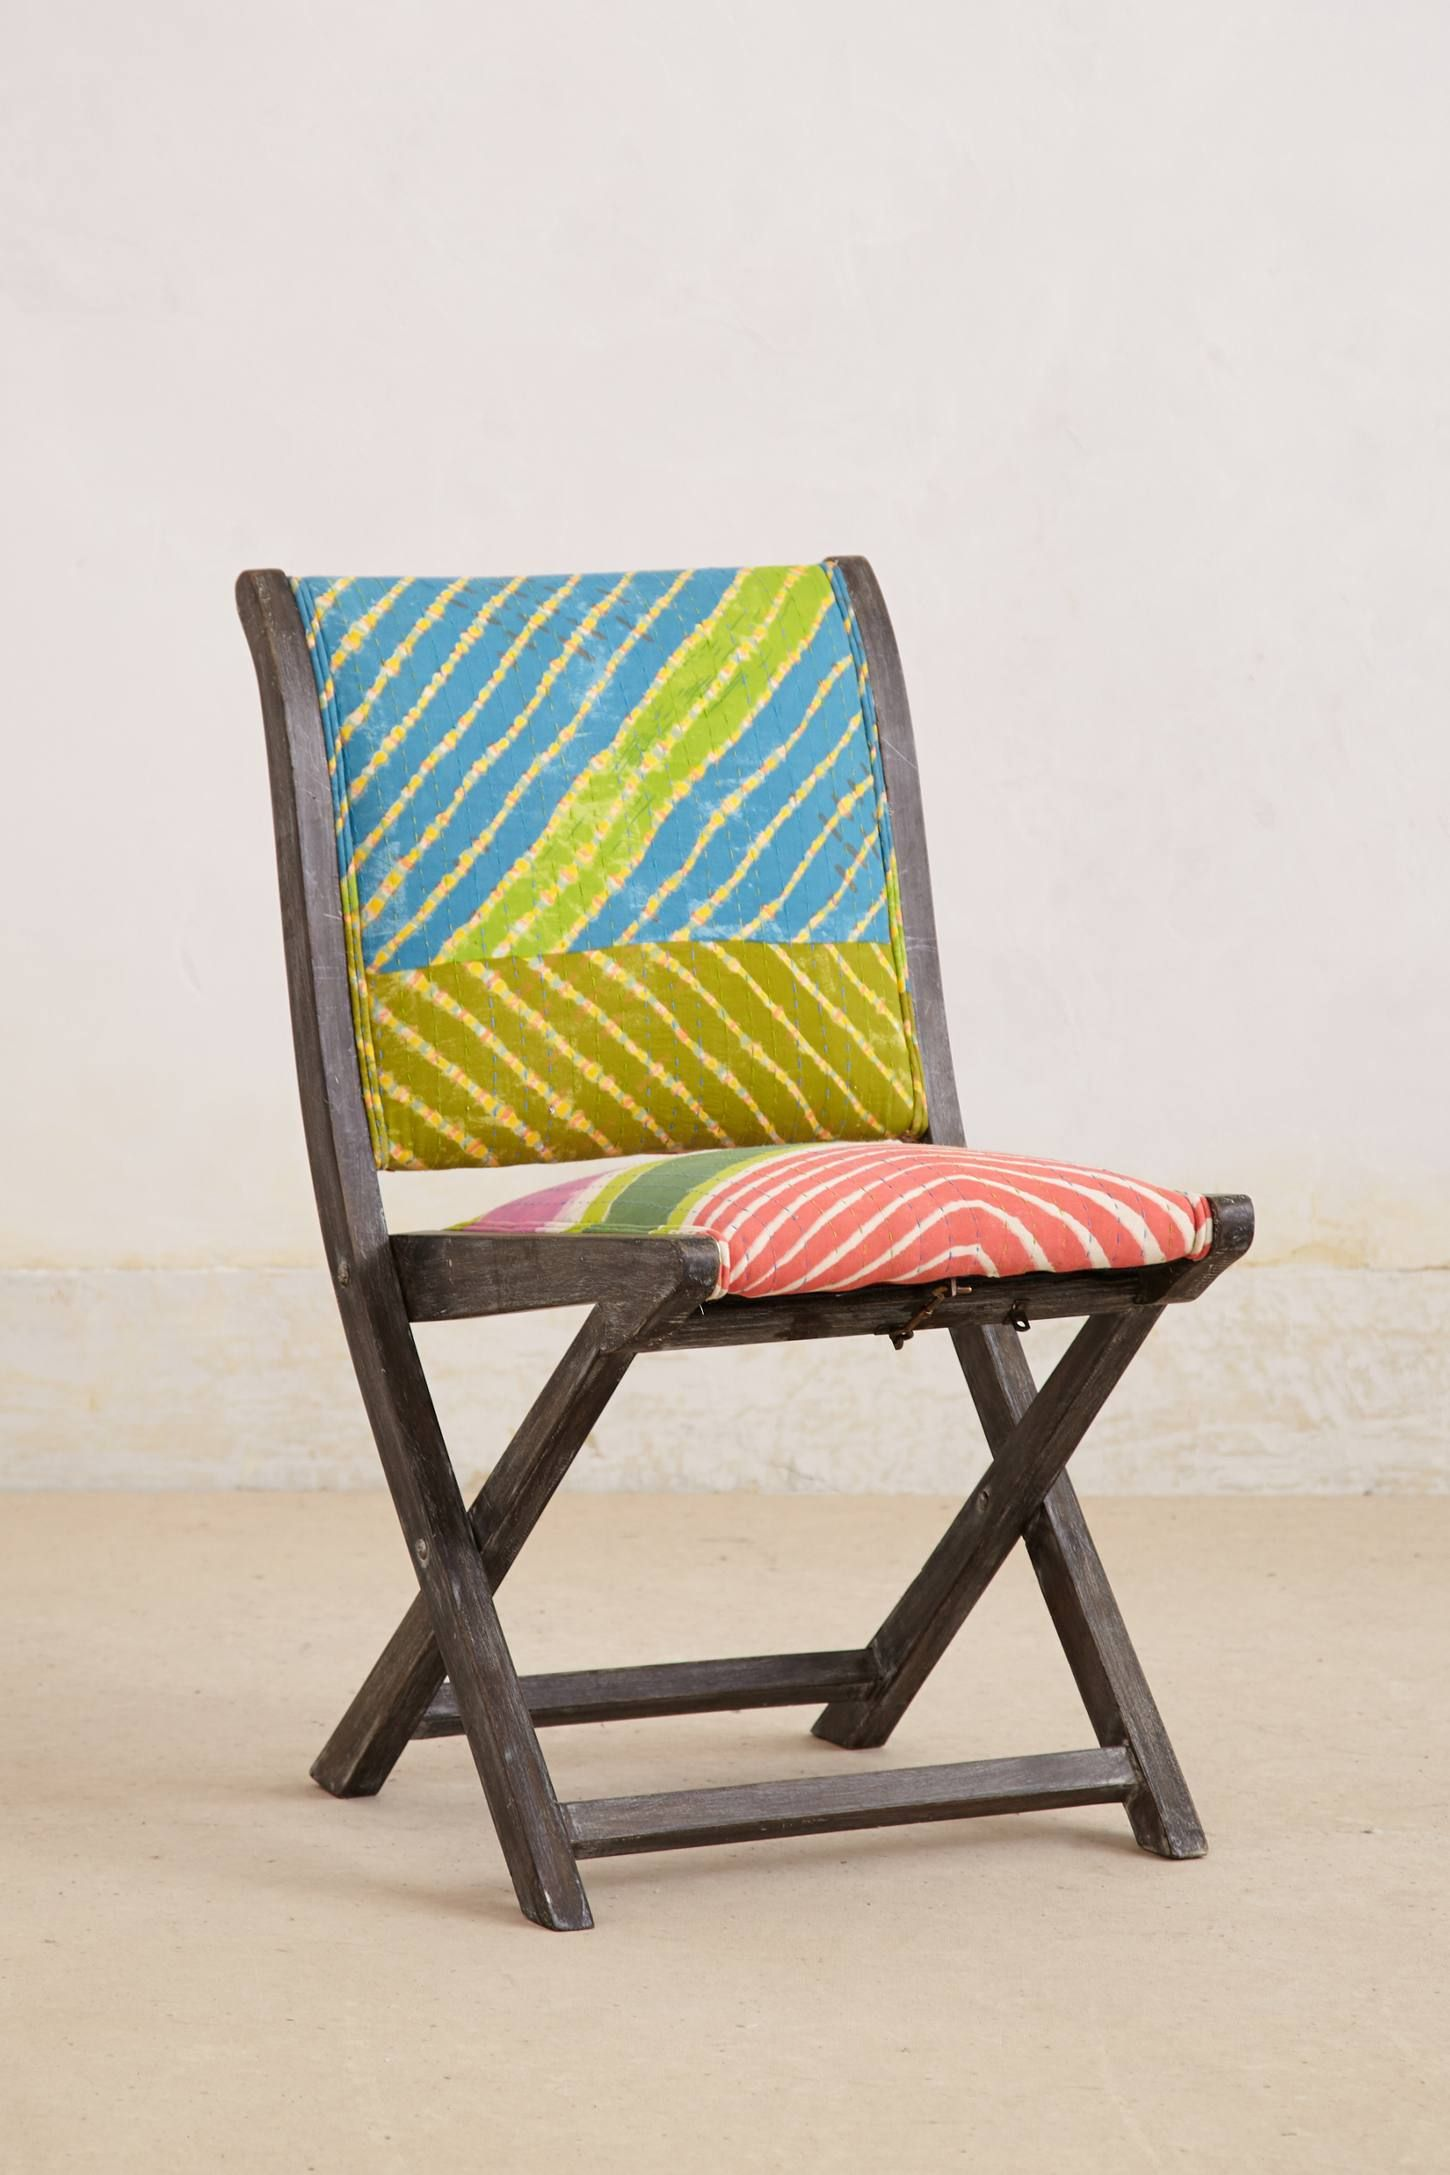 Folding Chairs At Target Pin By Weeping Willow On Grand Home In 2019 Chair Folding Chair